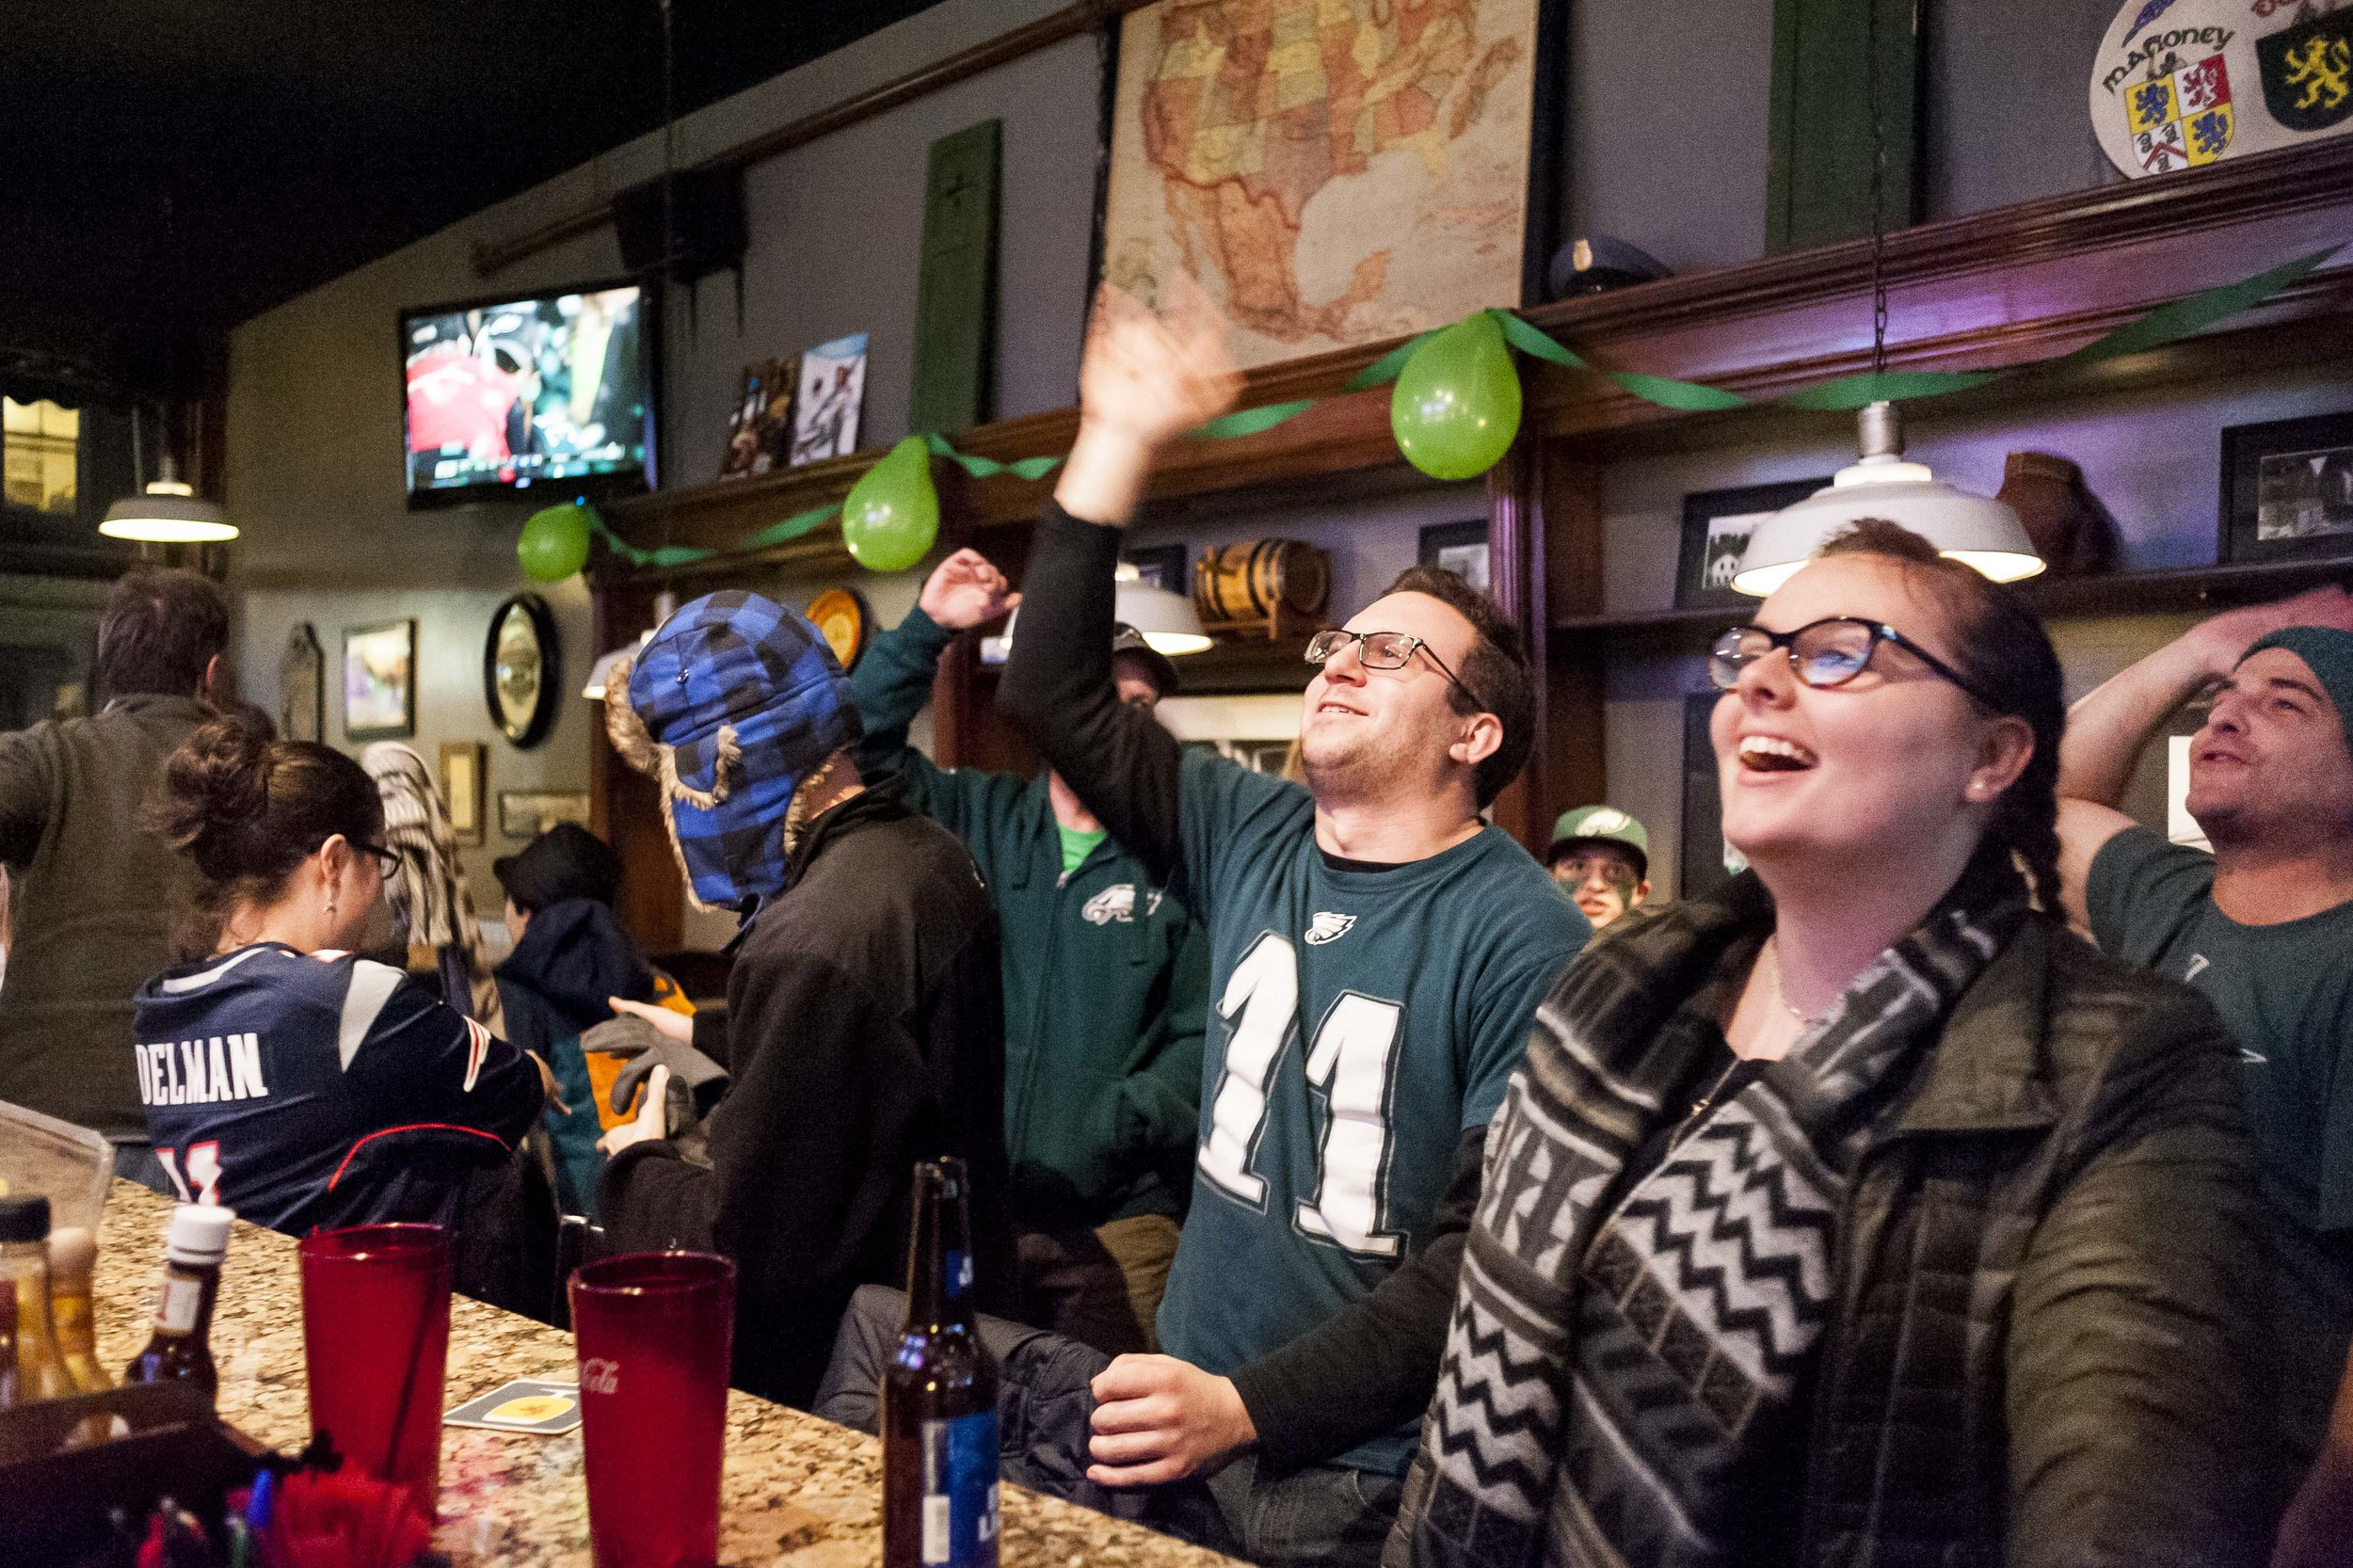 Eagles fans chant the Eagles' victory song at Langdon Street Tavern in Montpelier as Patriots fans pack up and leave following Philadelphia's first Super Bowl victory on Sunday, February 4th 2018.